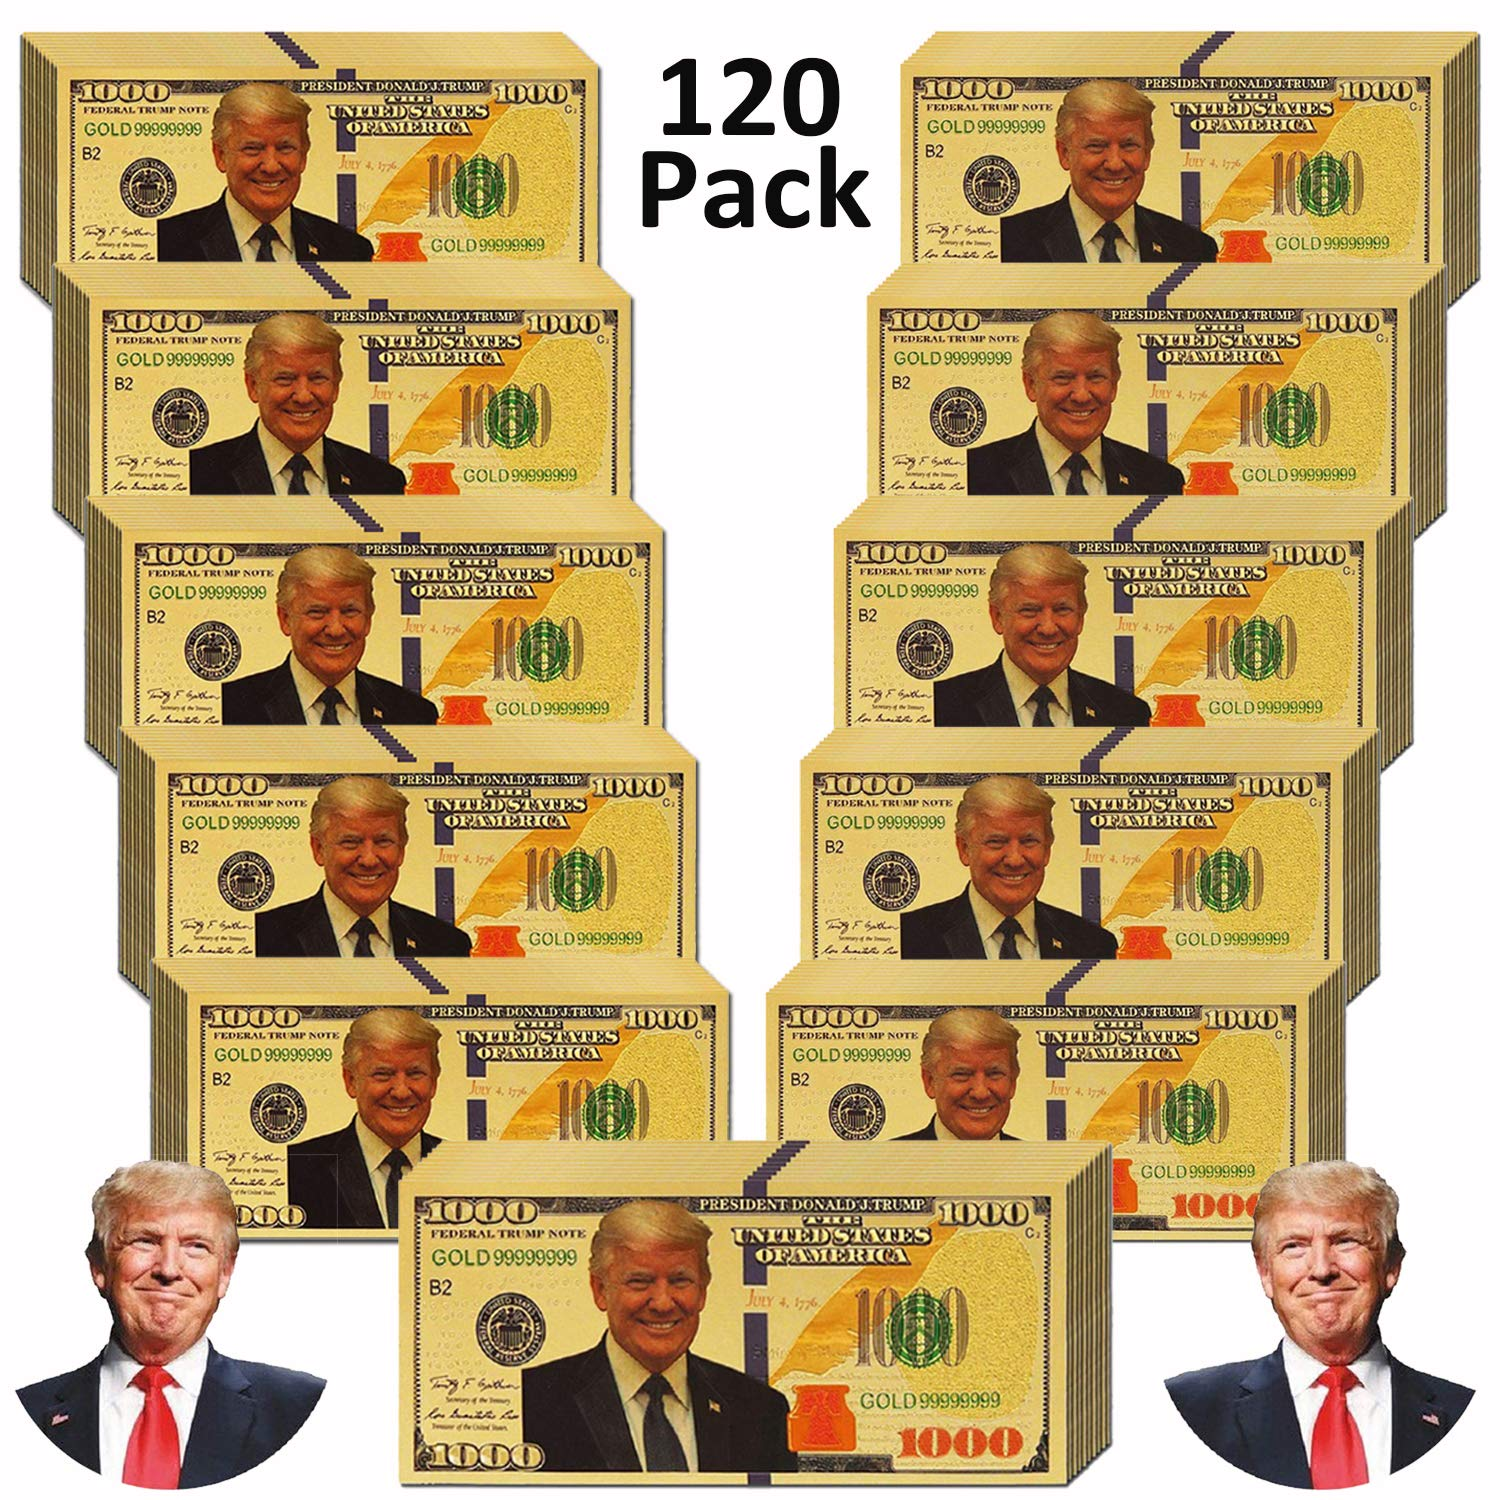 LONG7INES 1000 Dollar Donald Trump Bill Banknote, One Thousand 24k Gold Coated Donald Trump Legacy Limited Edition Million Dollar Bill Great Gift for Currency Collectors and Republican (120 Pieces)